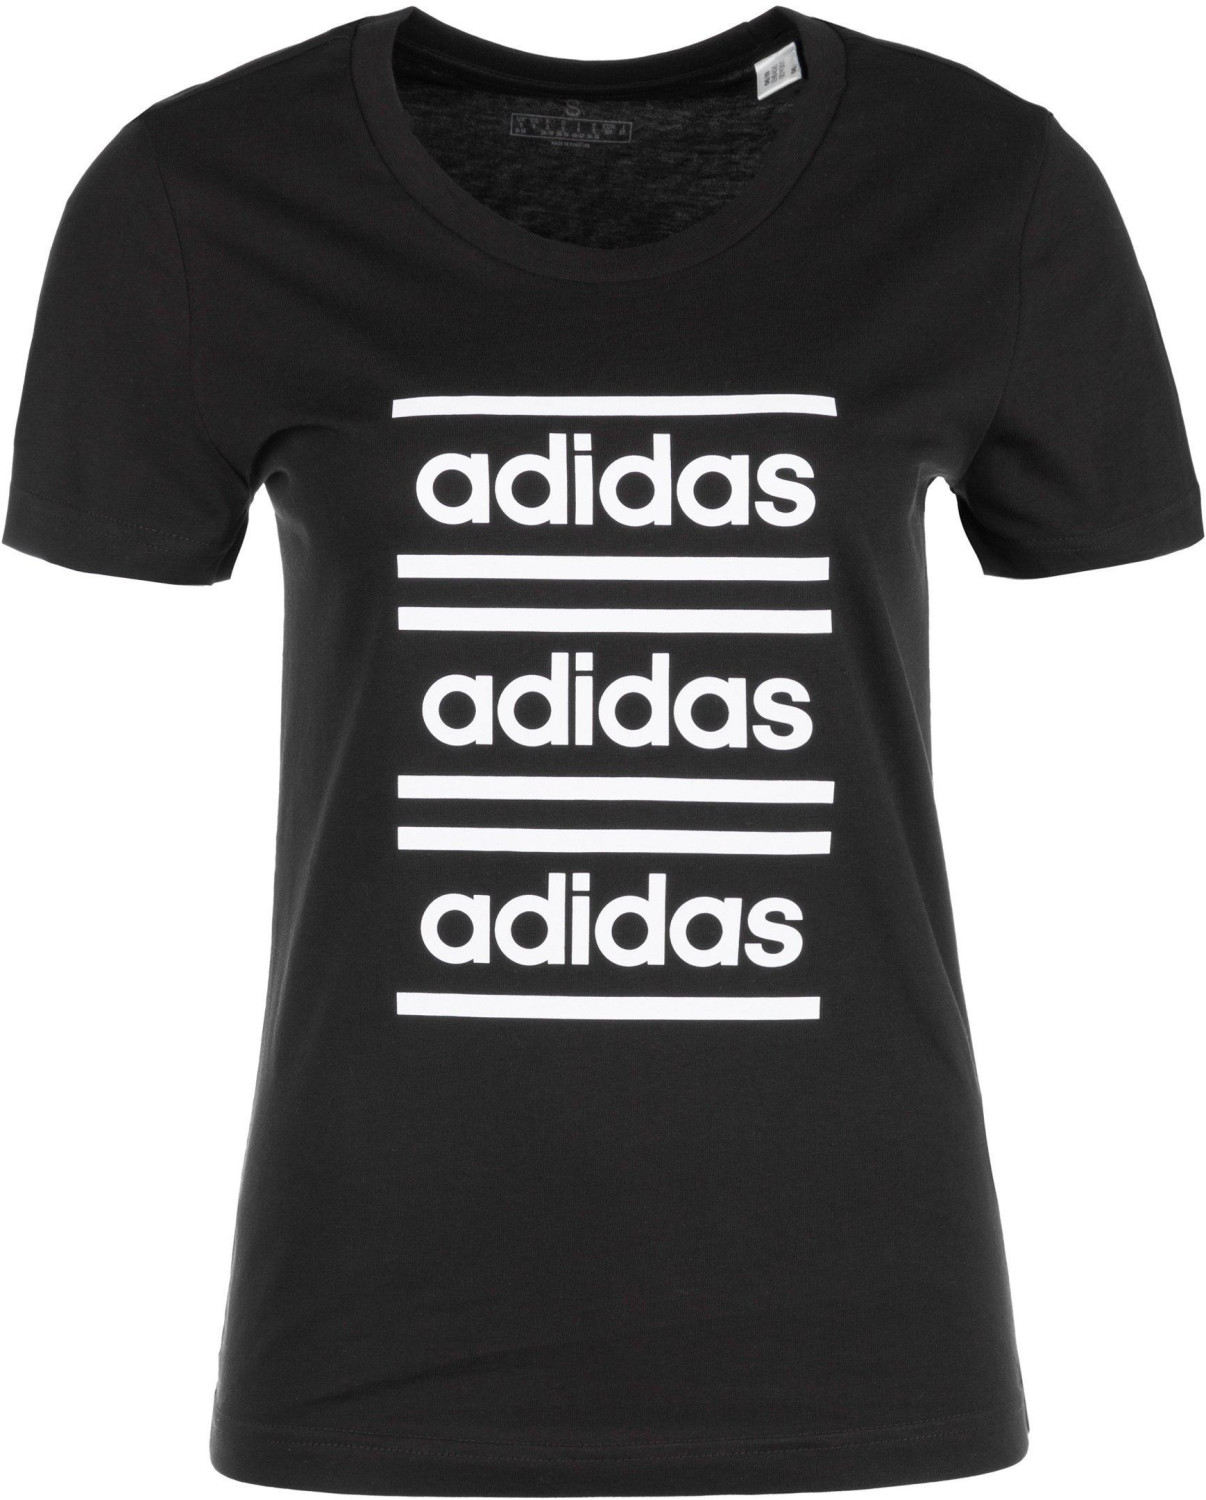 Image of Adidas Women Celebrate the 90s T-Shirt